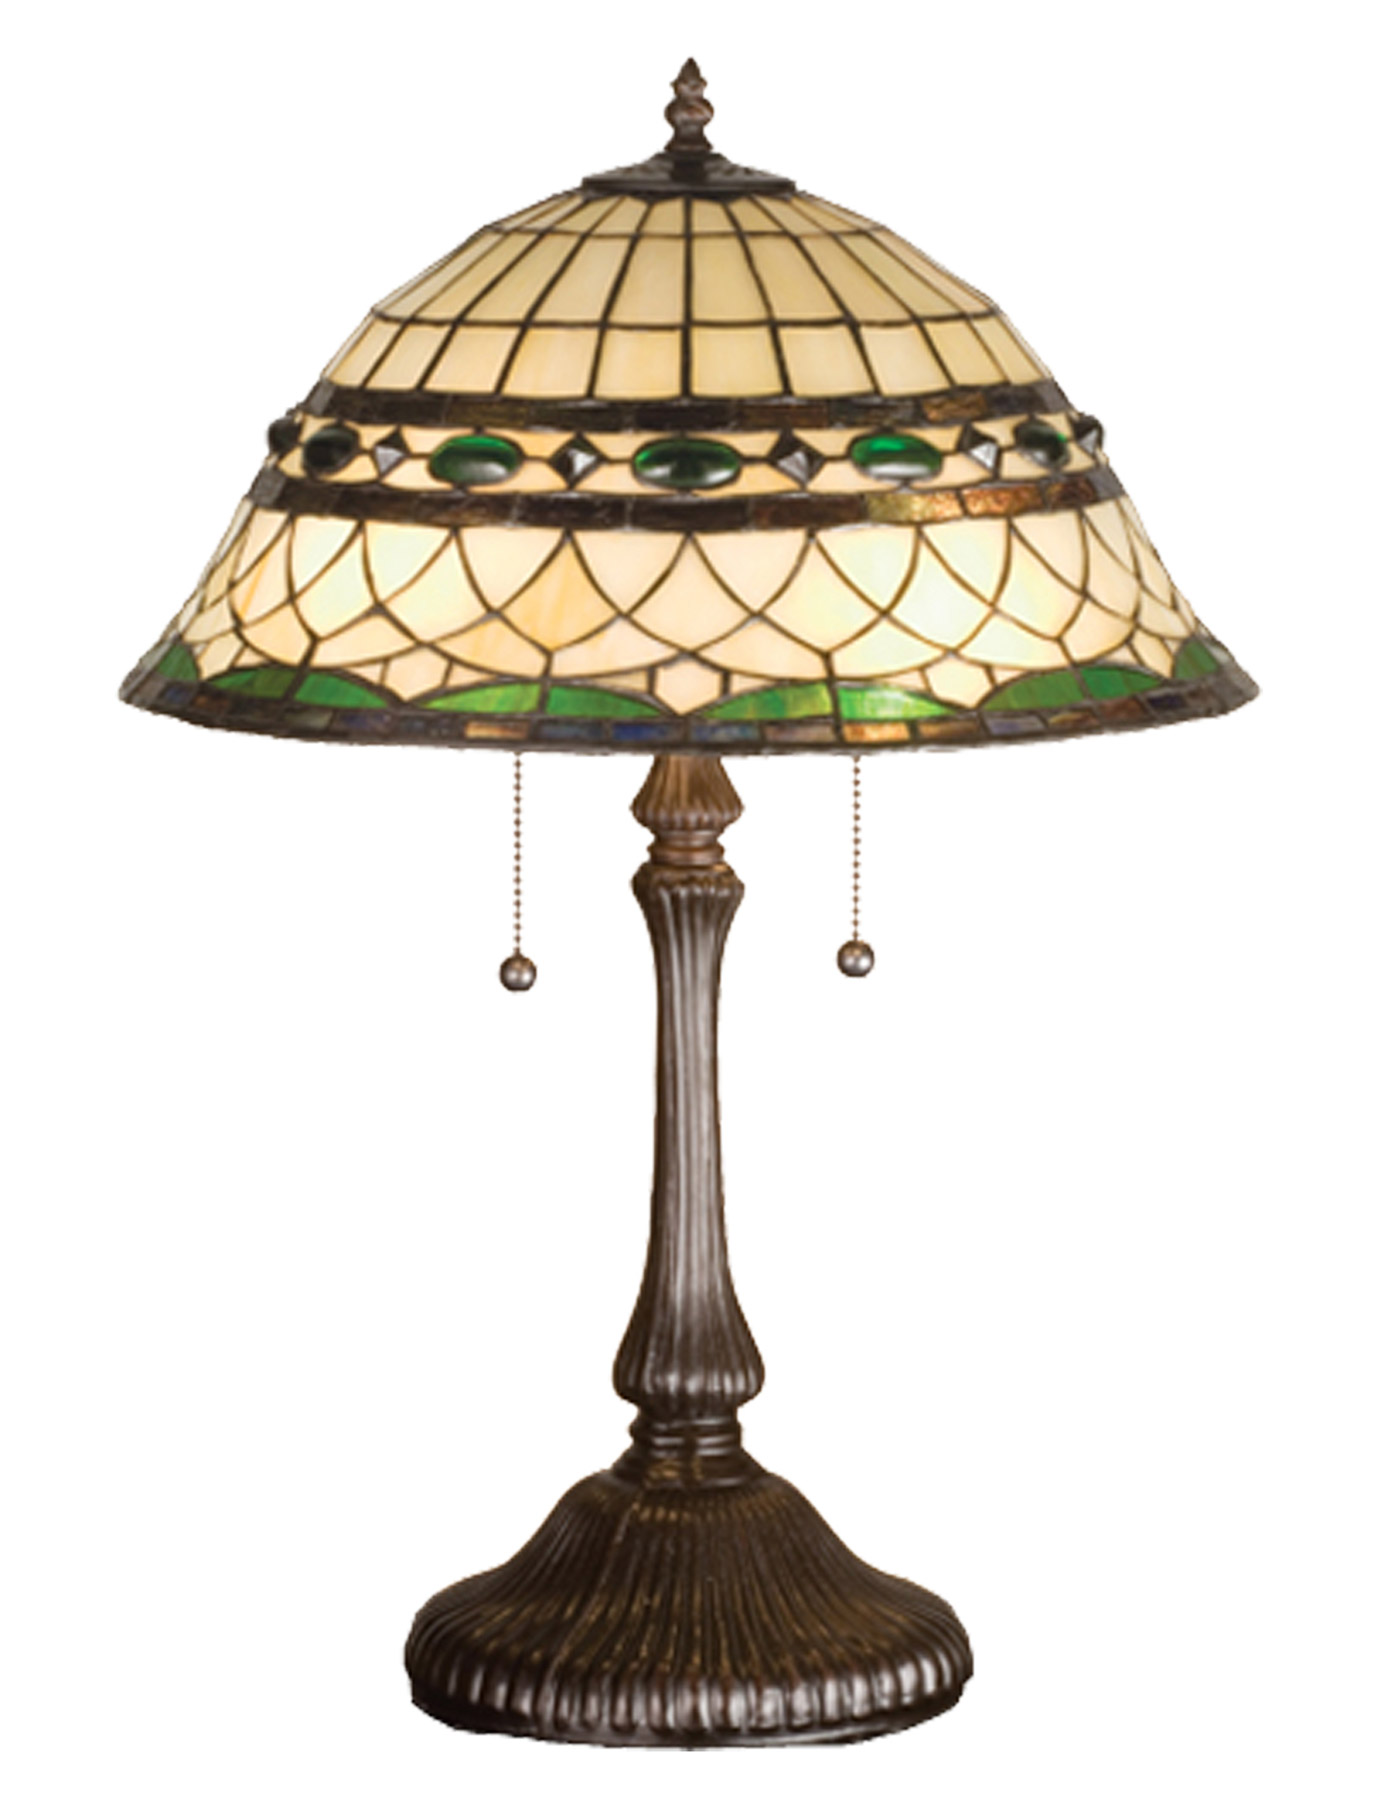 home lamps table lamps standard table lamps meyda 27538. Black Bedroom Furniture Sets. Home Design Ideas